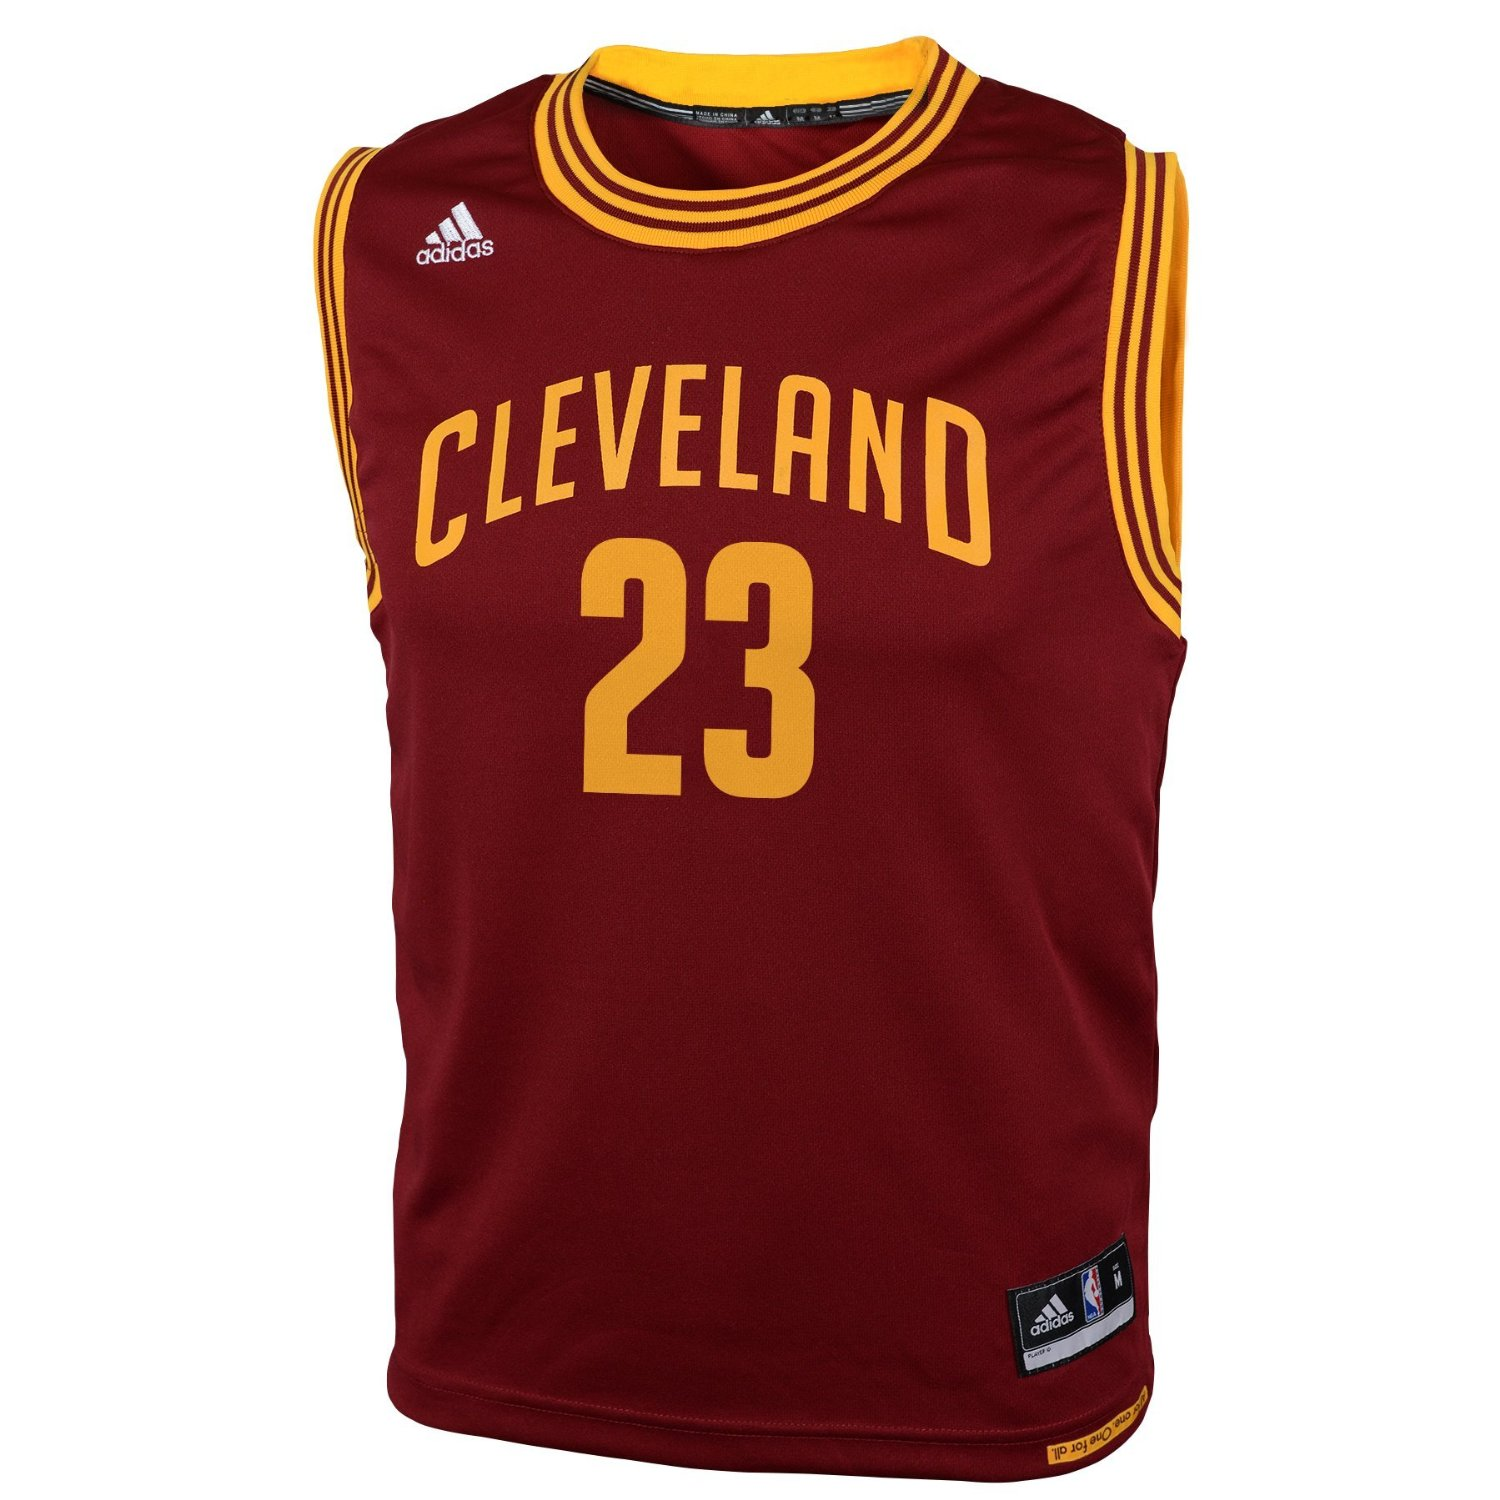 NBA Cleveland Cavaliers Youth Boys 8-20 Replica Road Jersey, James # 23, Small